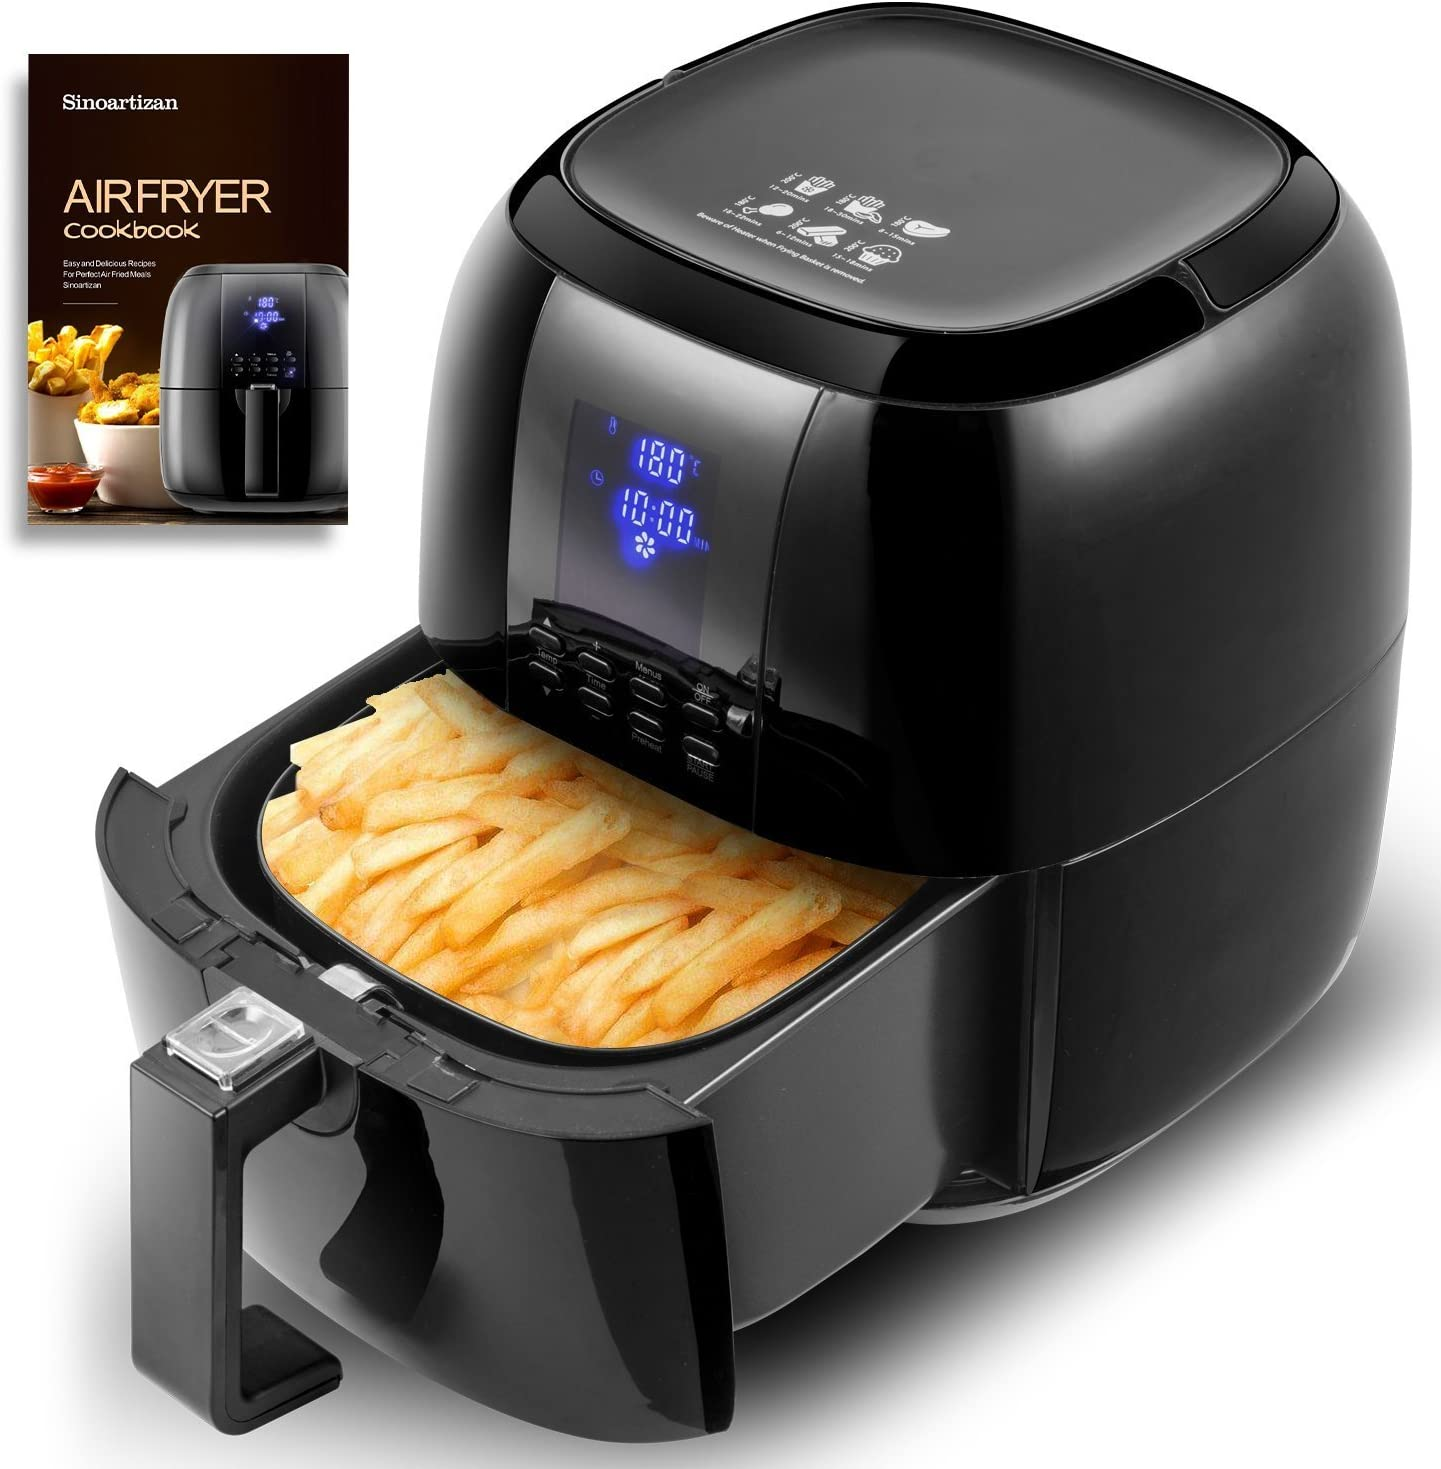 Digital Multi-function Air Fryer with LED Display, Healthy Oil-free Cooking with 8 Pre-set Cooking Programs (Black)